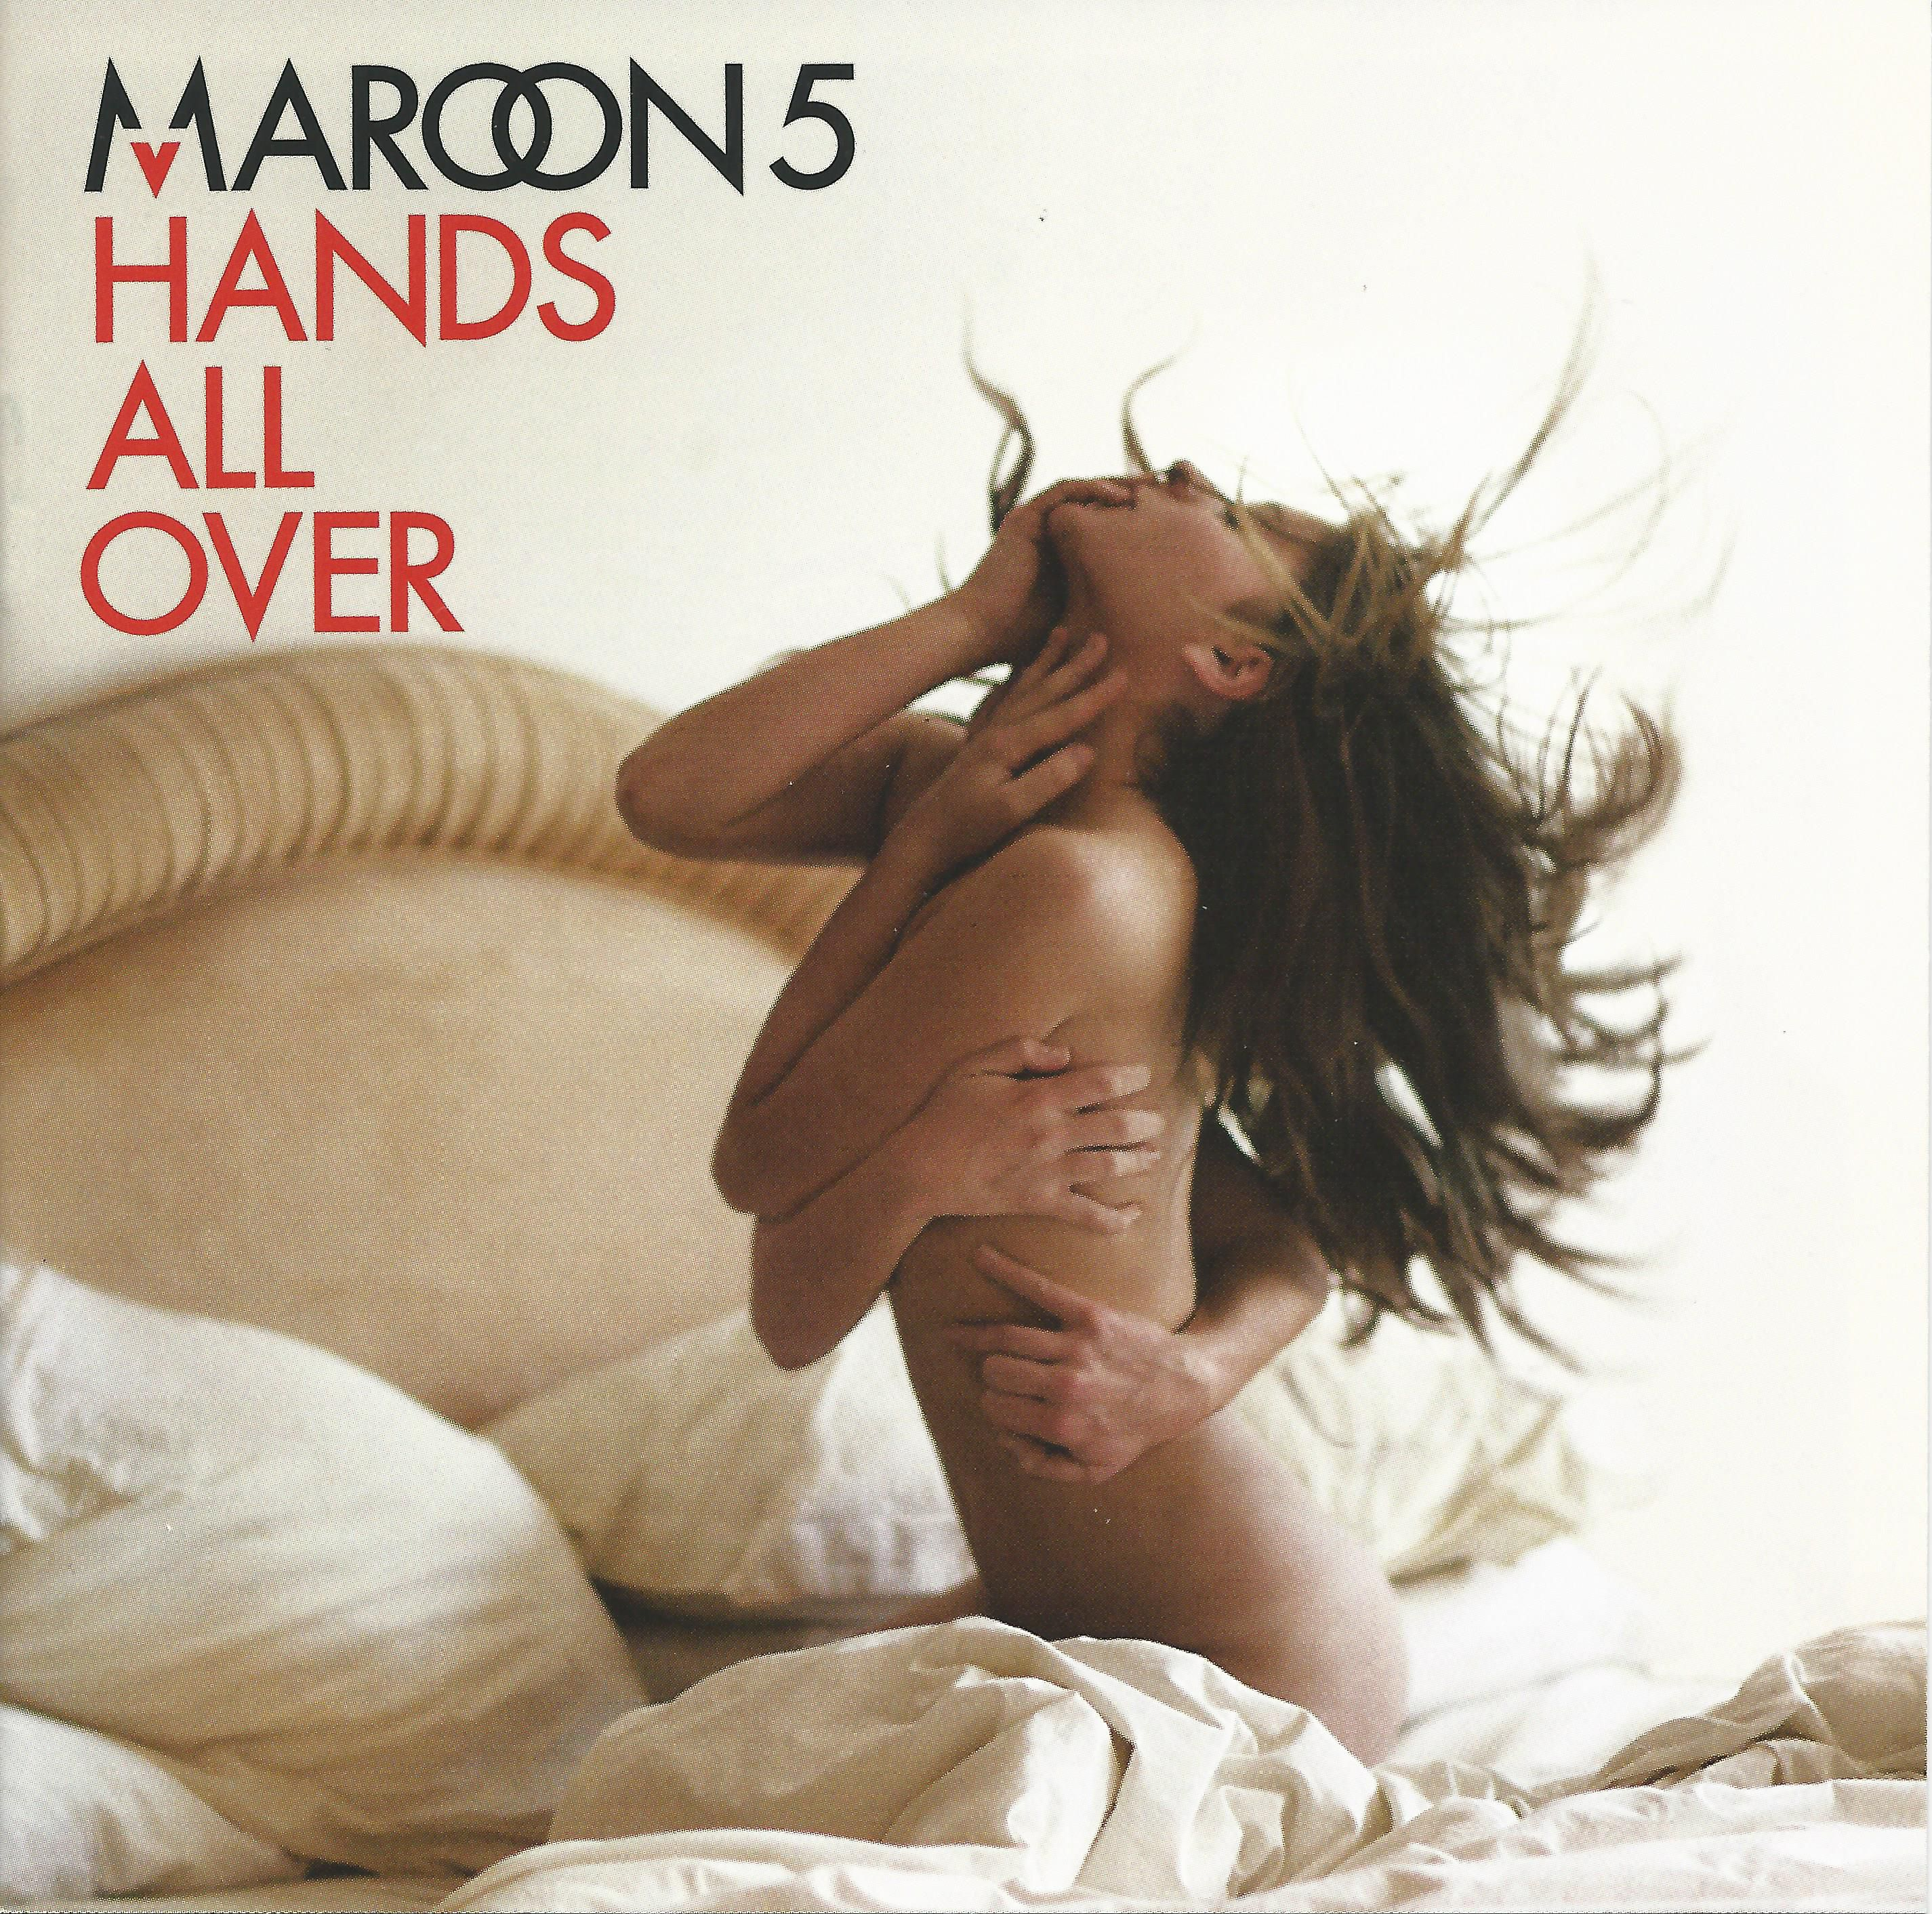 Maroon 5 - Hands All Over album cover